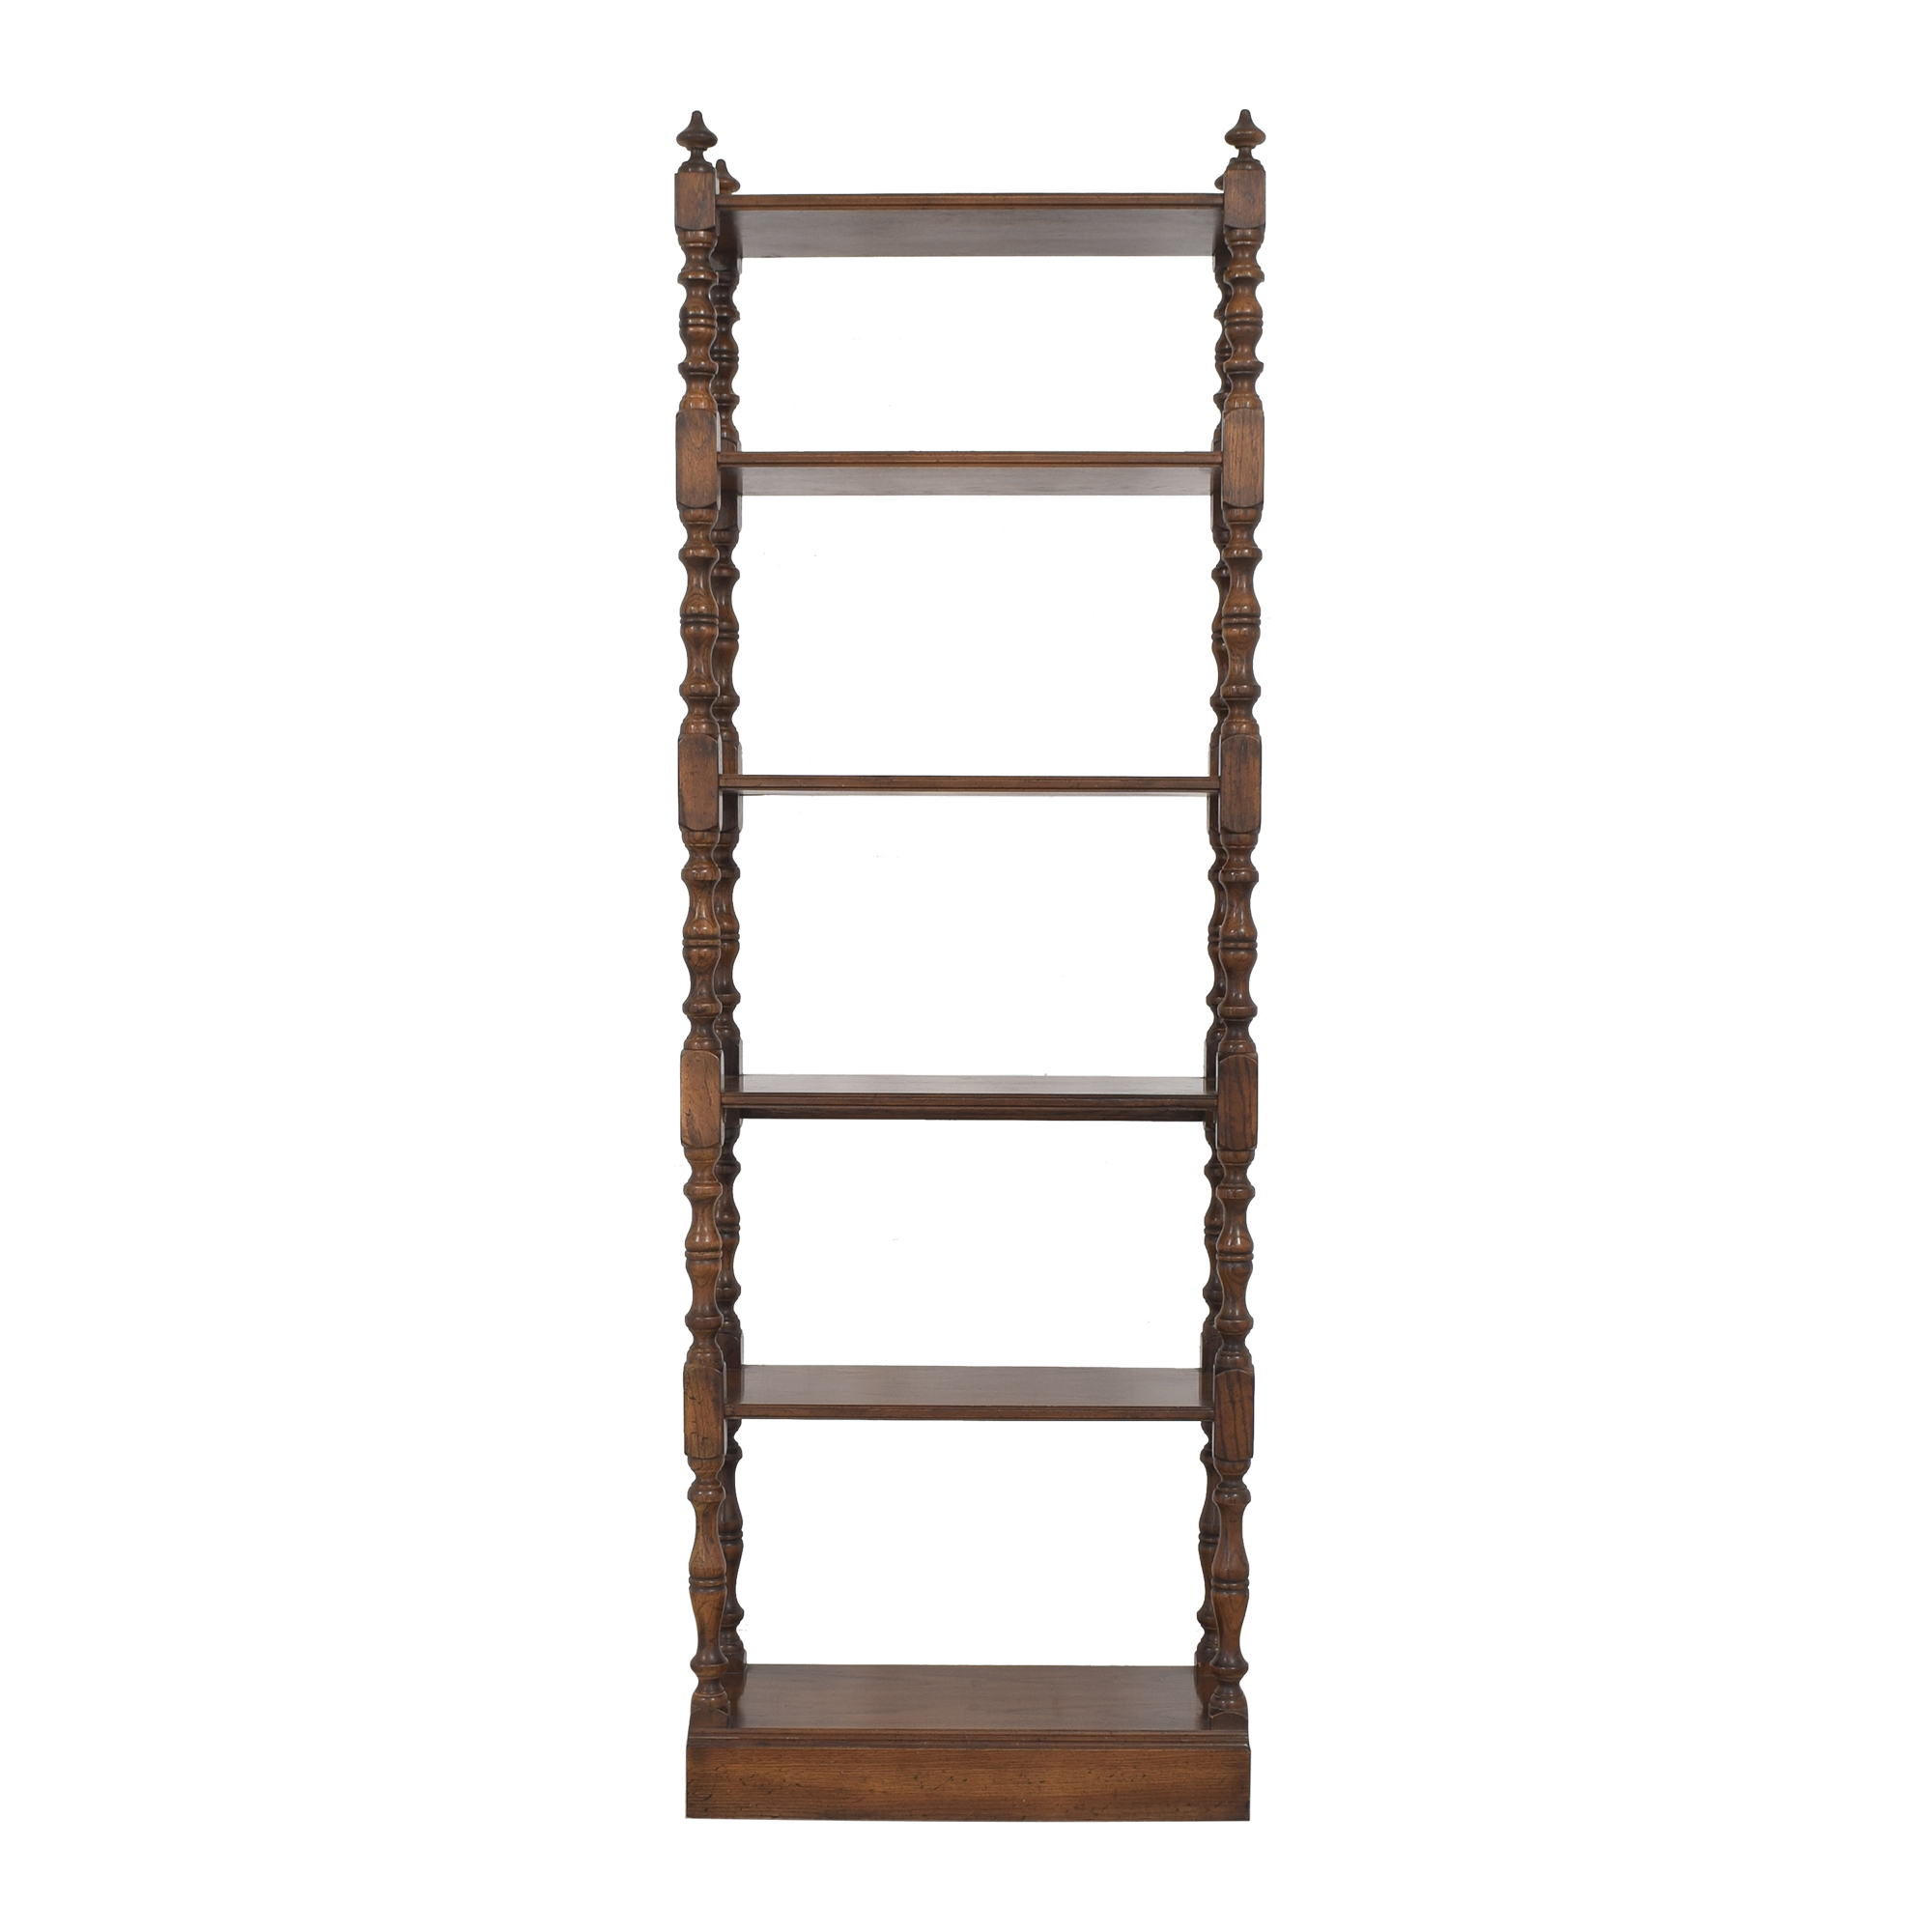 Drexel Heritage Drexel Heritage Turned Column Etagere Bookcase coupon